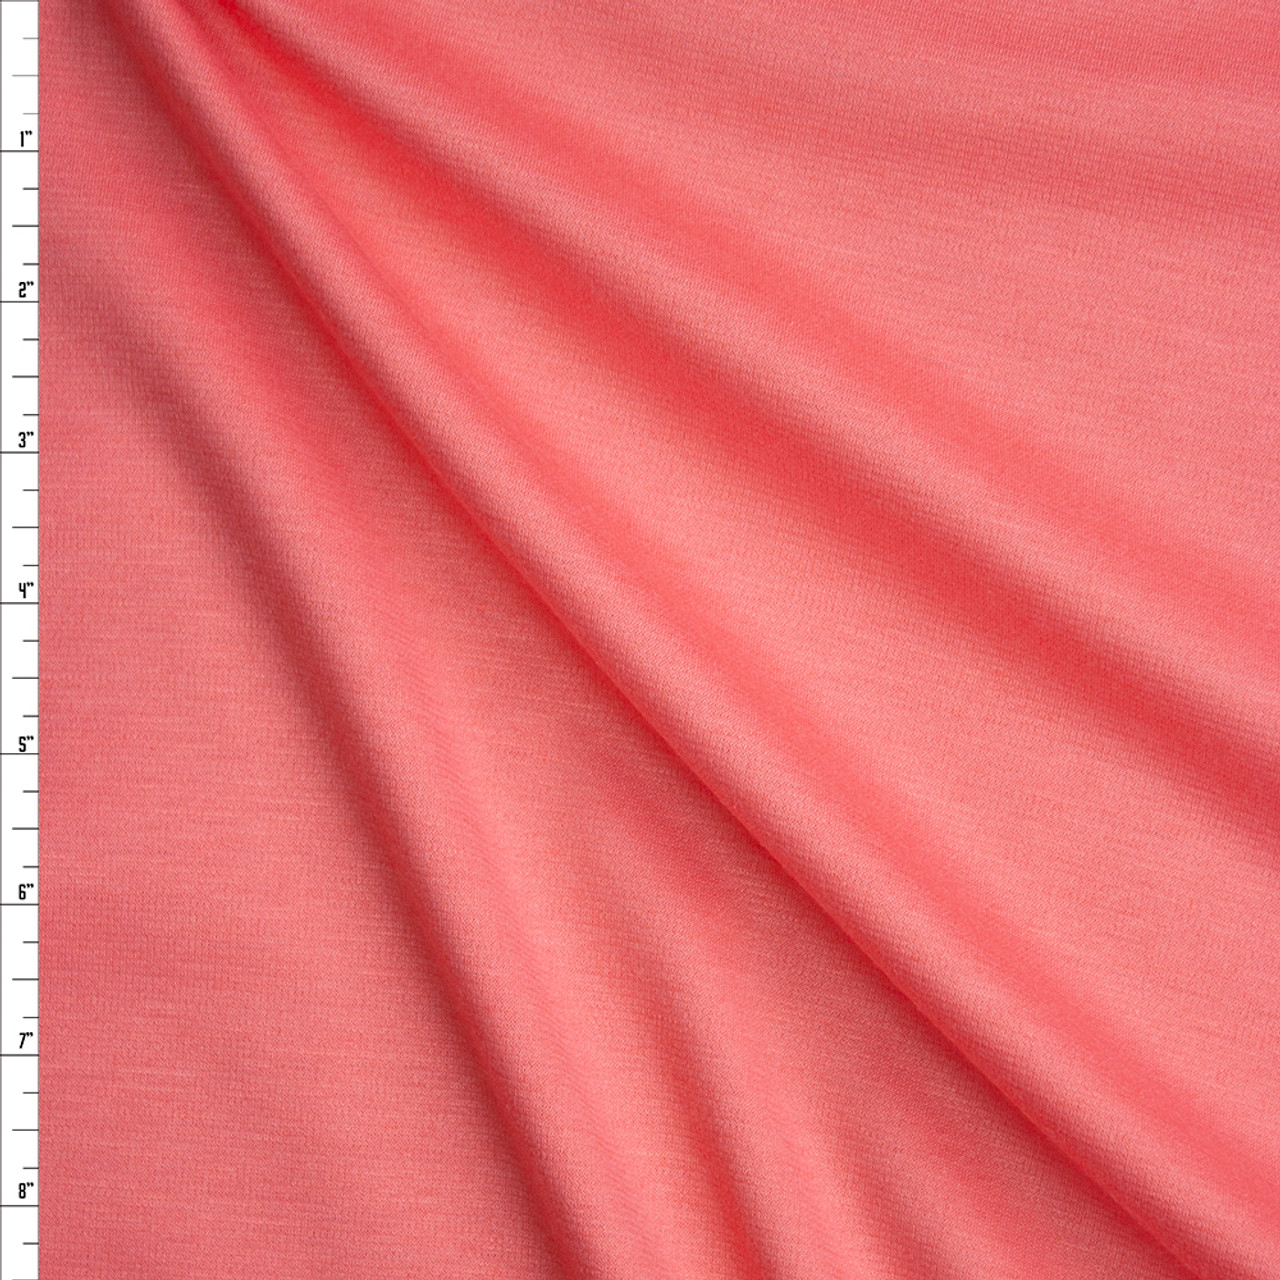 77dea77434c Cali Fabrics Peachy Pink Solid Ponte De Roma Fabric by the Yard